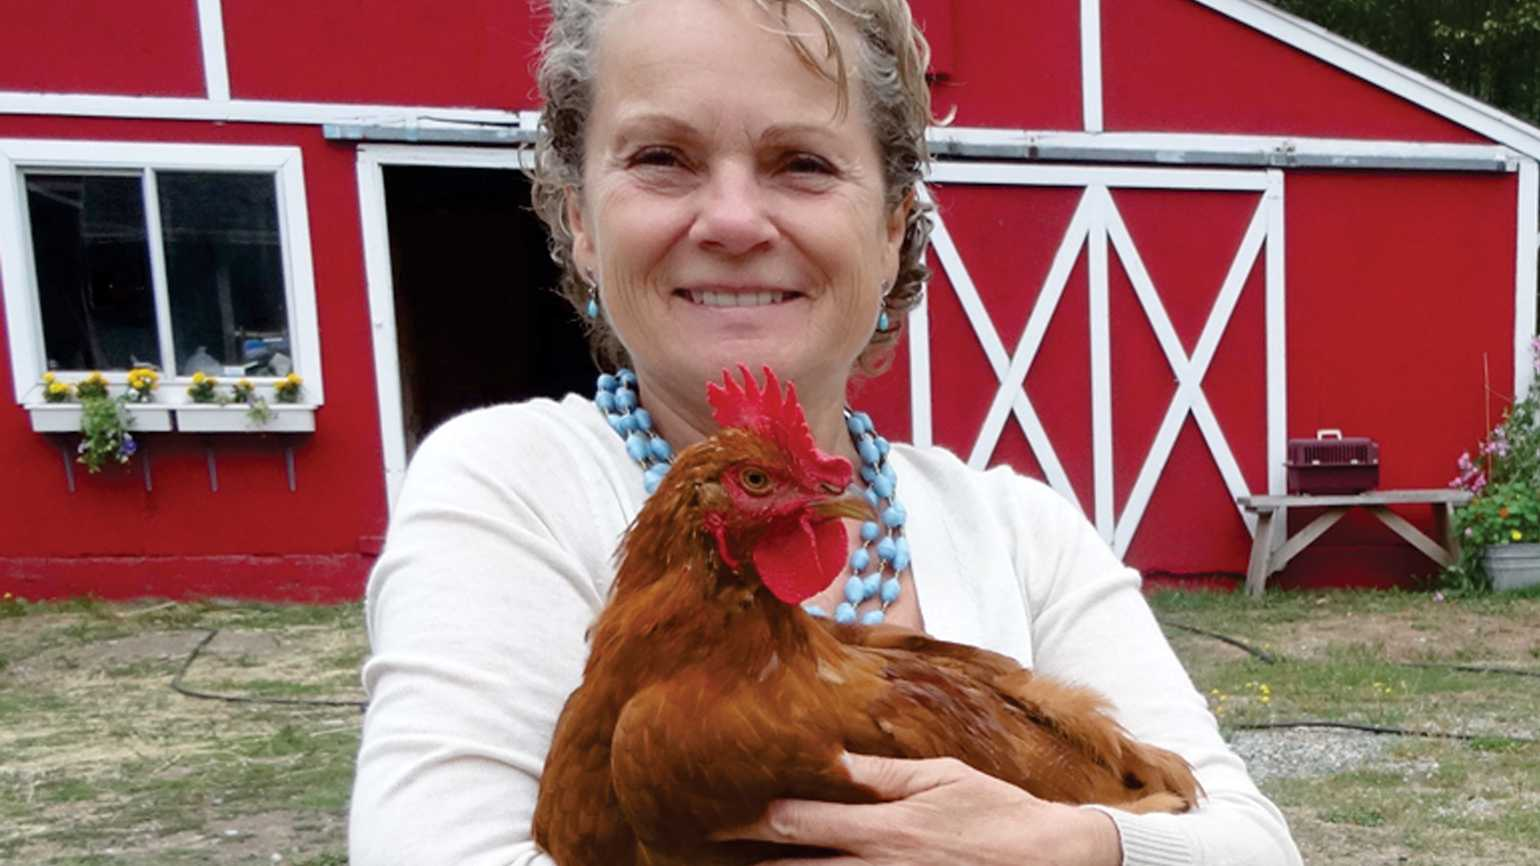 Louise the rooster loves people.